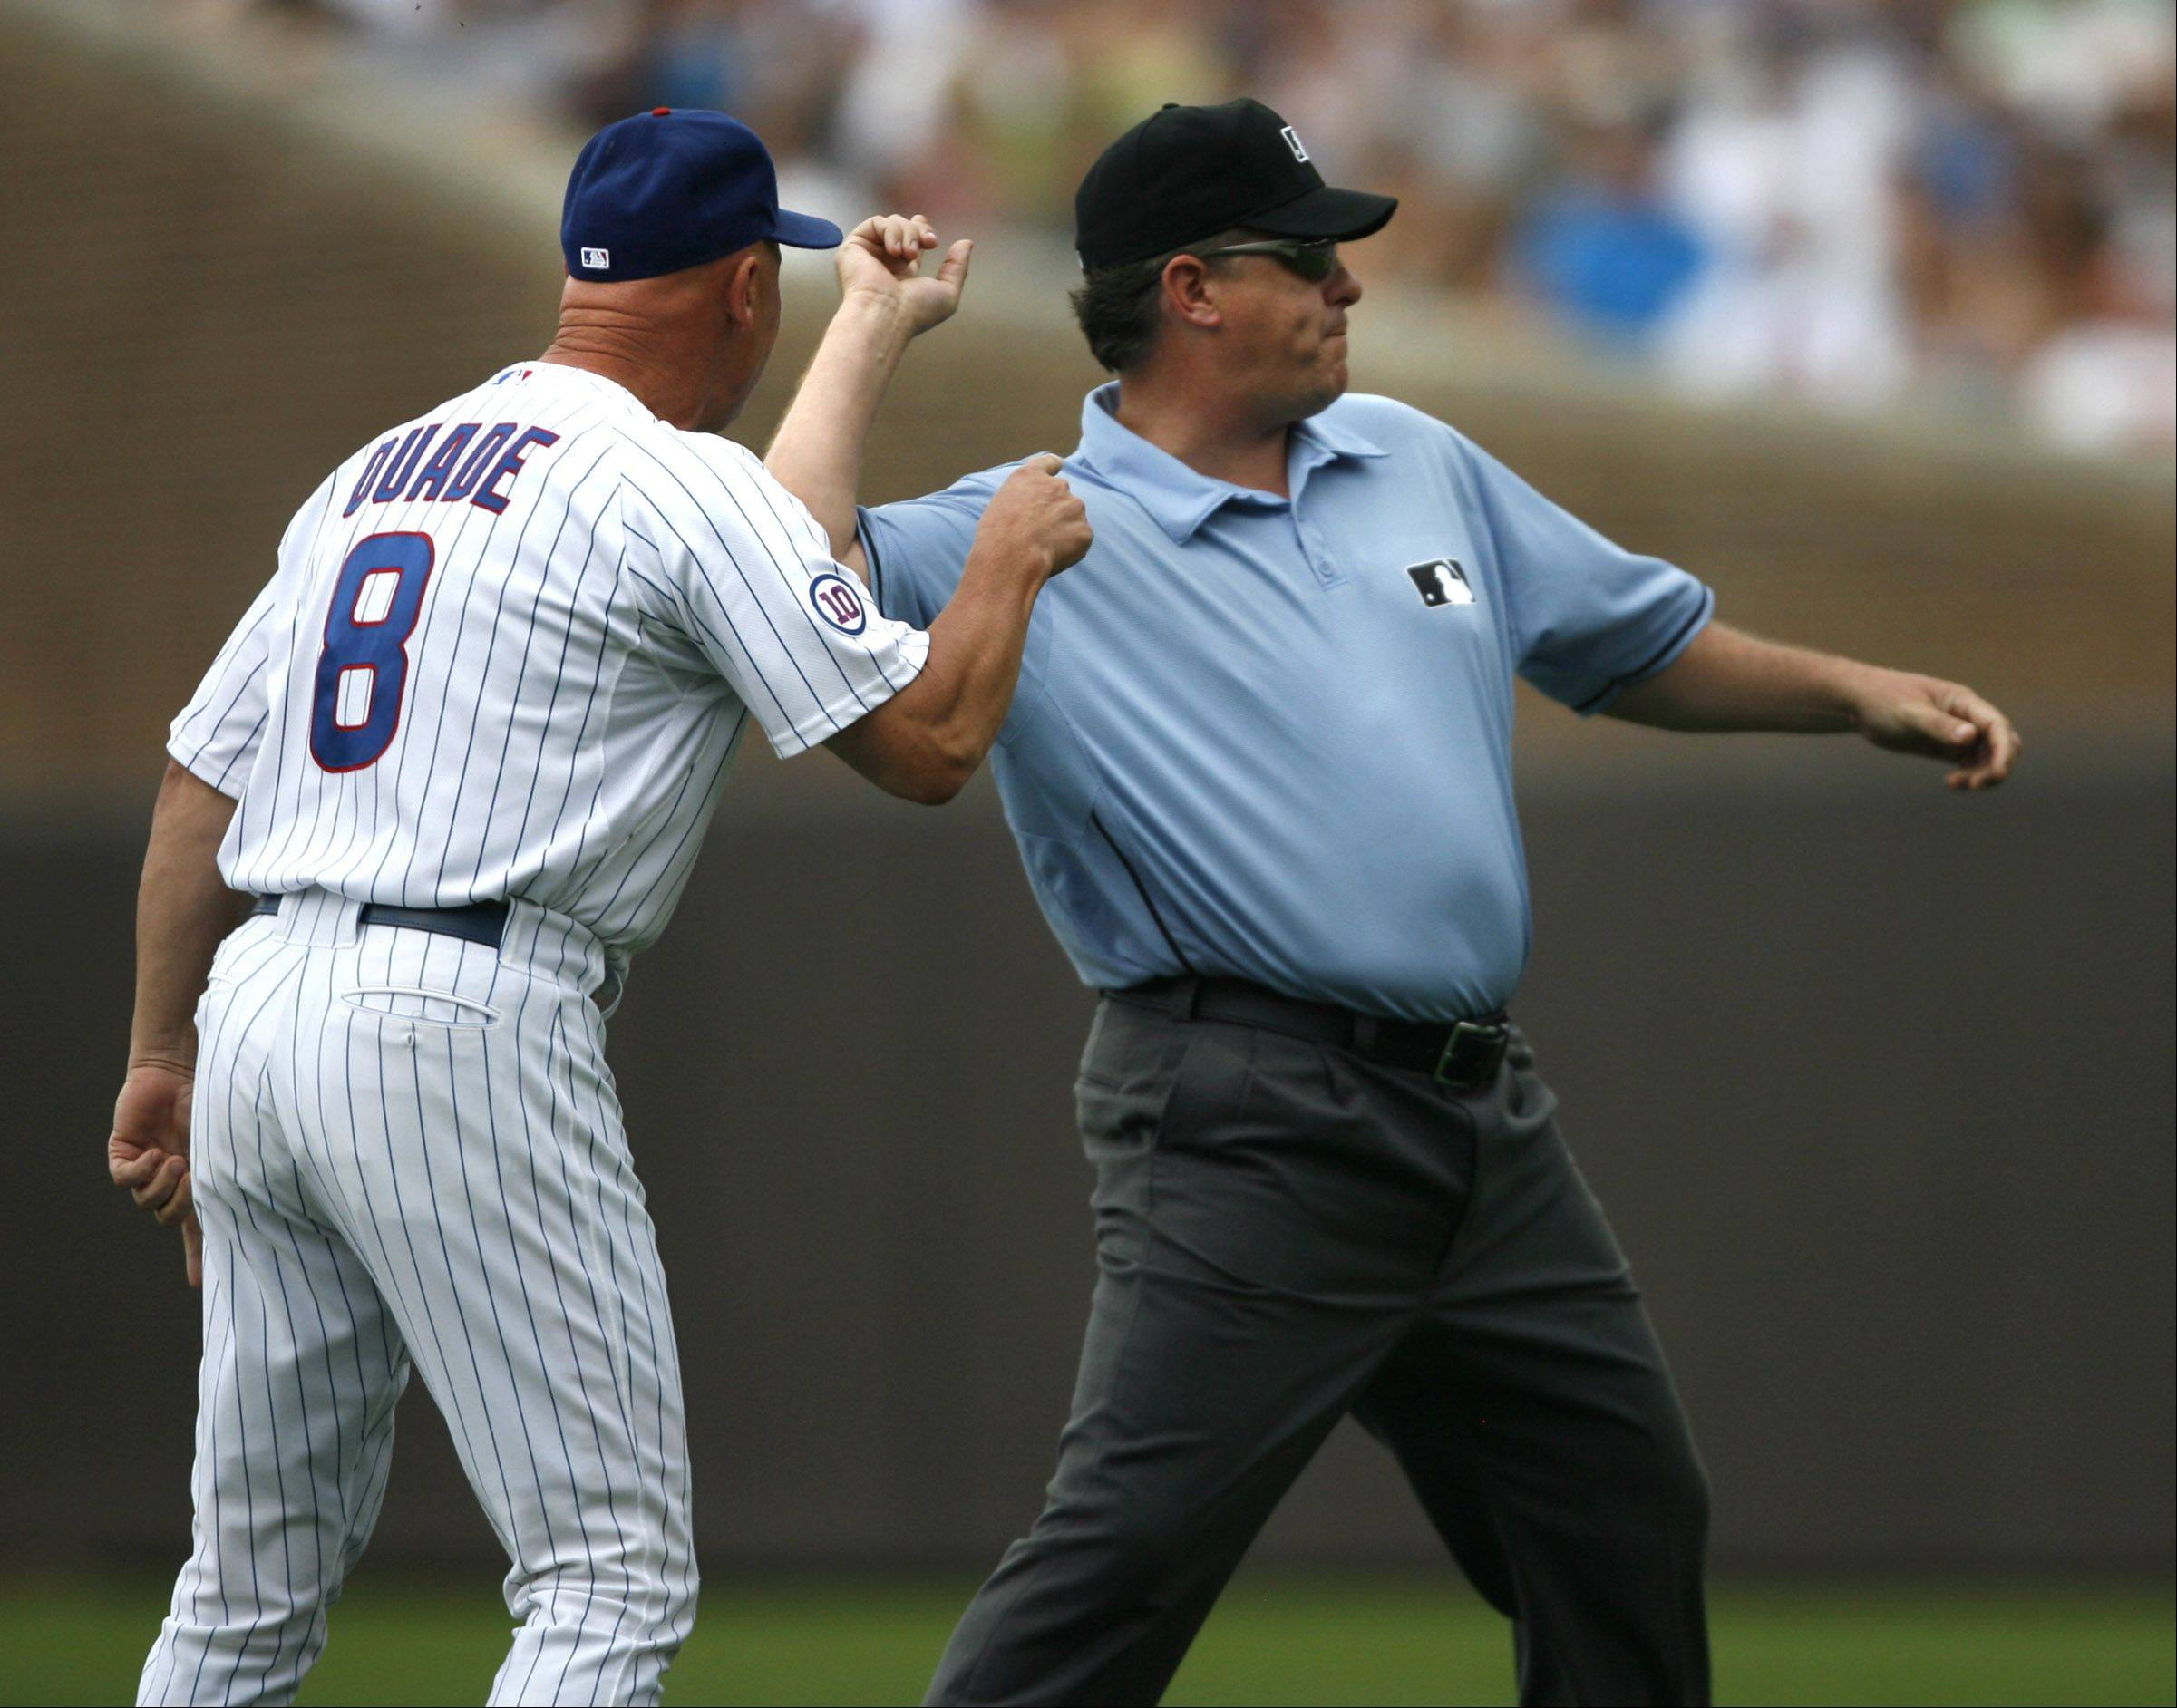 Cubs manager Mike Quade is thrown out of a game with the White Sox at Wrigley Field.